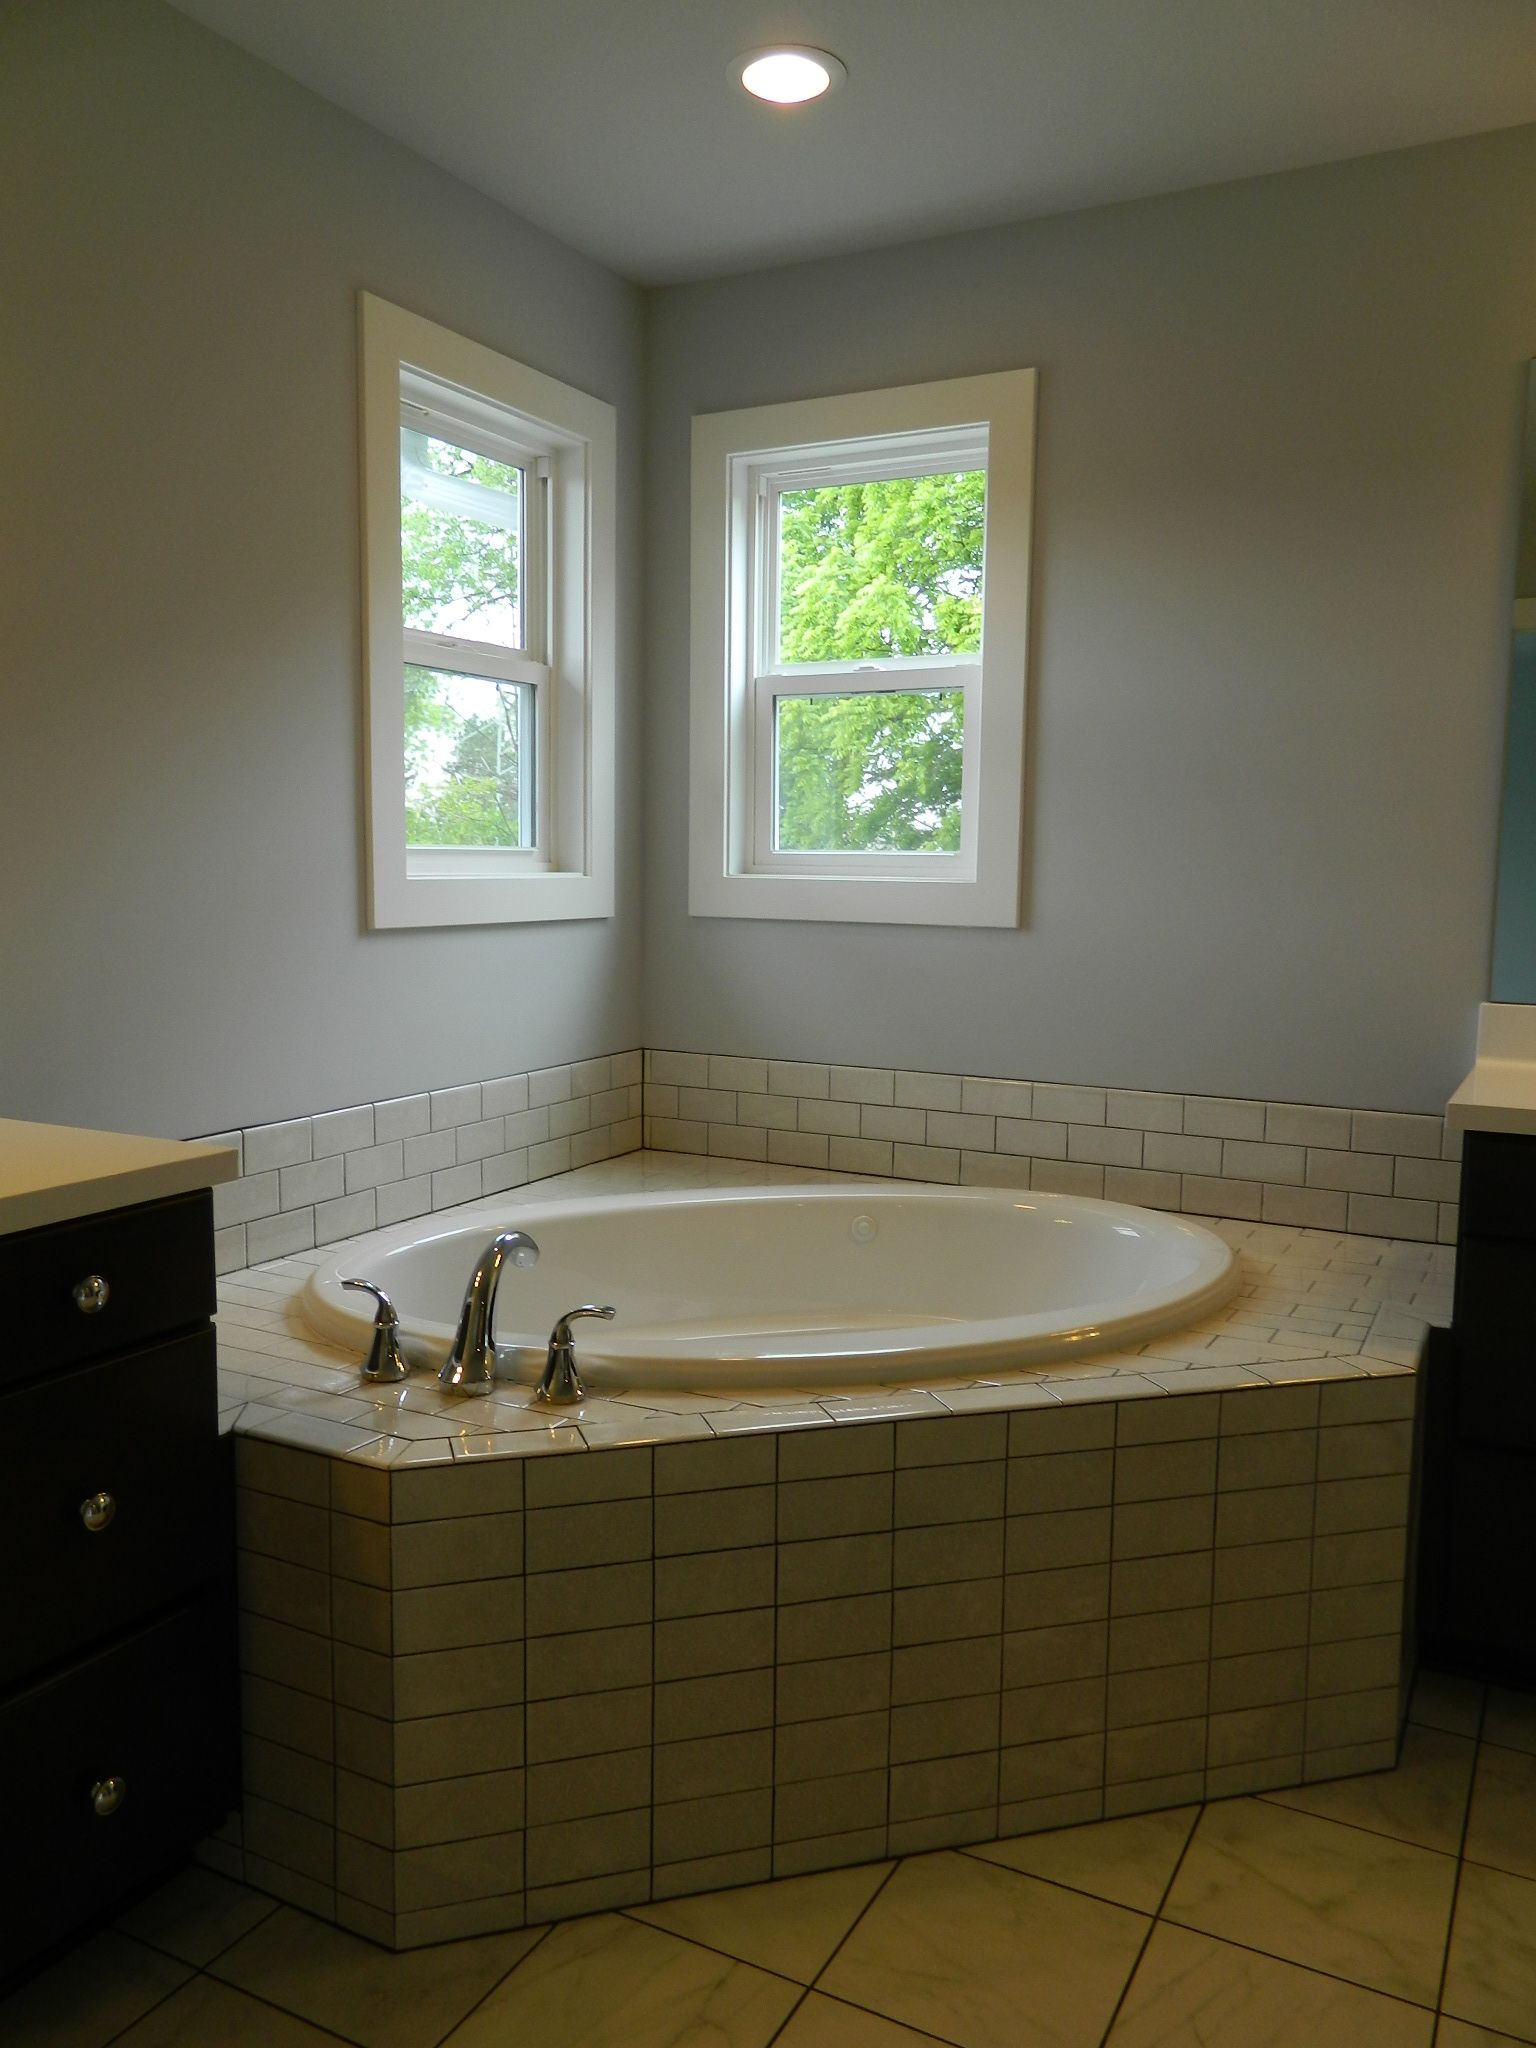 Subway Tile Tub Deck With Drop In Bathtub Double Hung